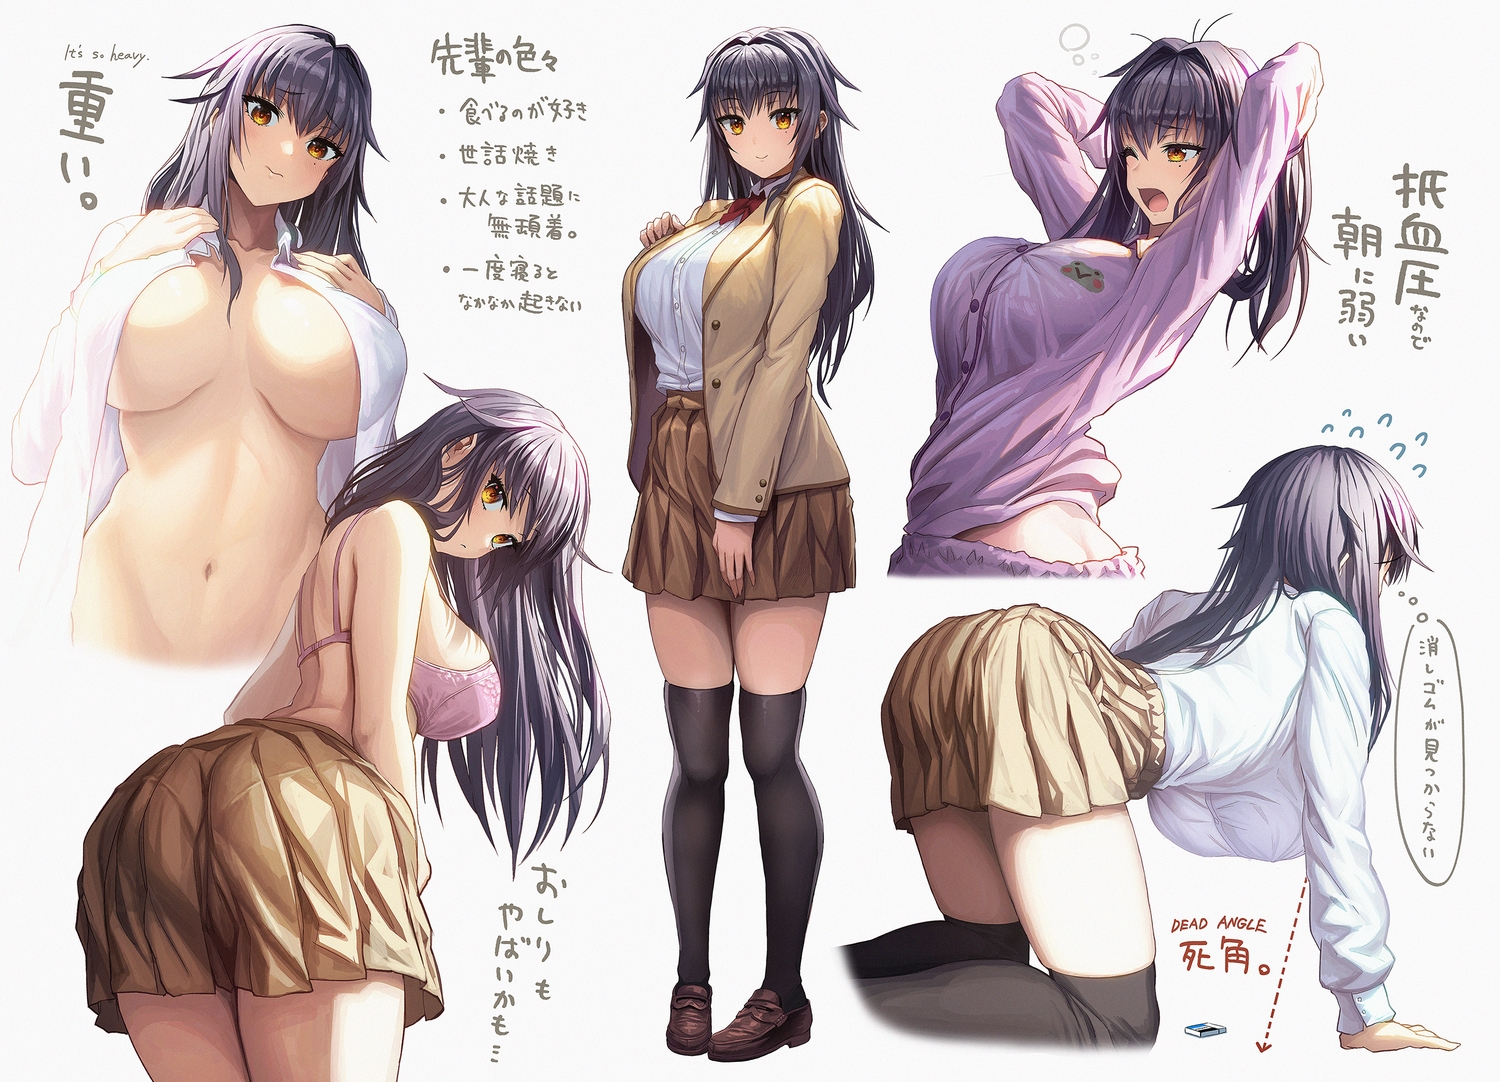 bow breasts gibagiba long_hair naked_shirt no_bra open_shirt orange_eyes original pajamas purple_hair school_uniform shirt skirt thighhighs translation_request wink zettai_ryouiki